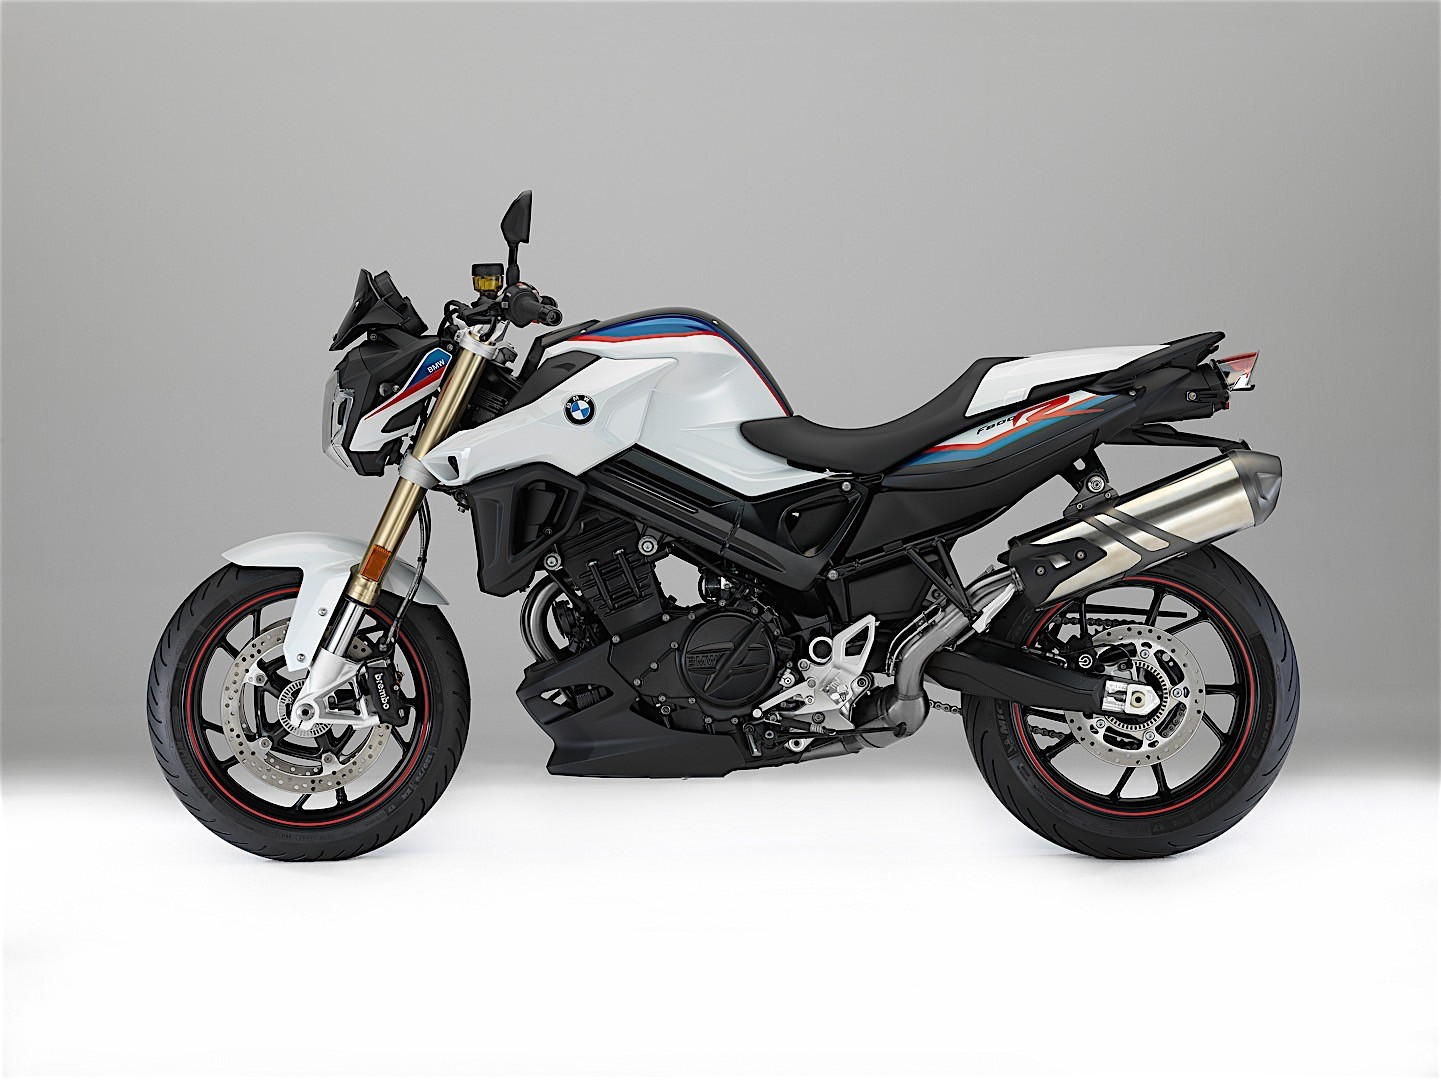 2017 bmw f 800 r and f 800 gt updated at eicma autoevolution. Black Bedroom Furniture Sets. Home Design Ideas